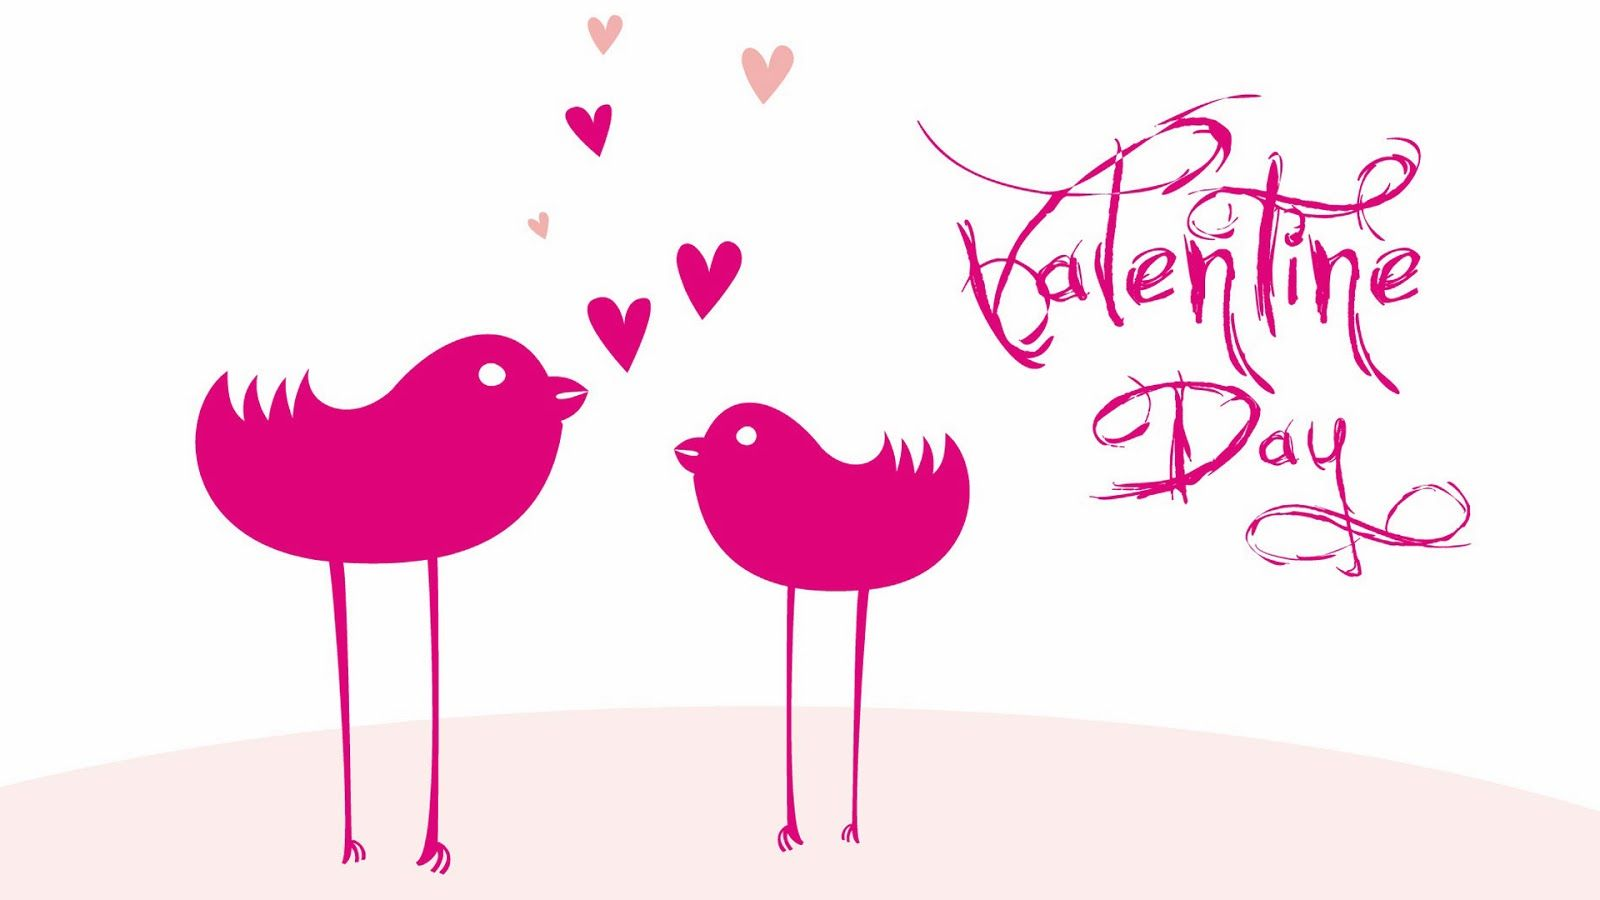 valentines day screensavers free valentines wallpaper free www happy valentines day free valentine day